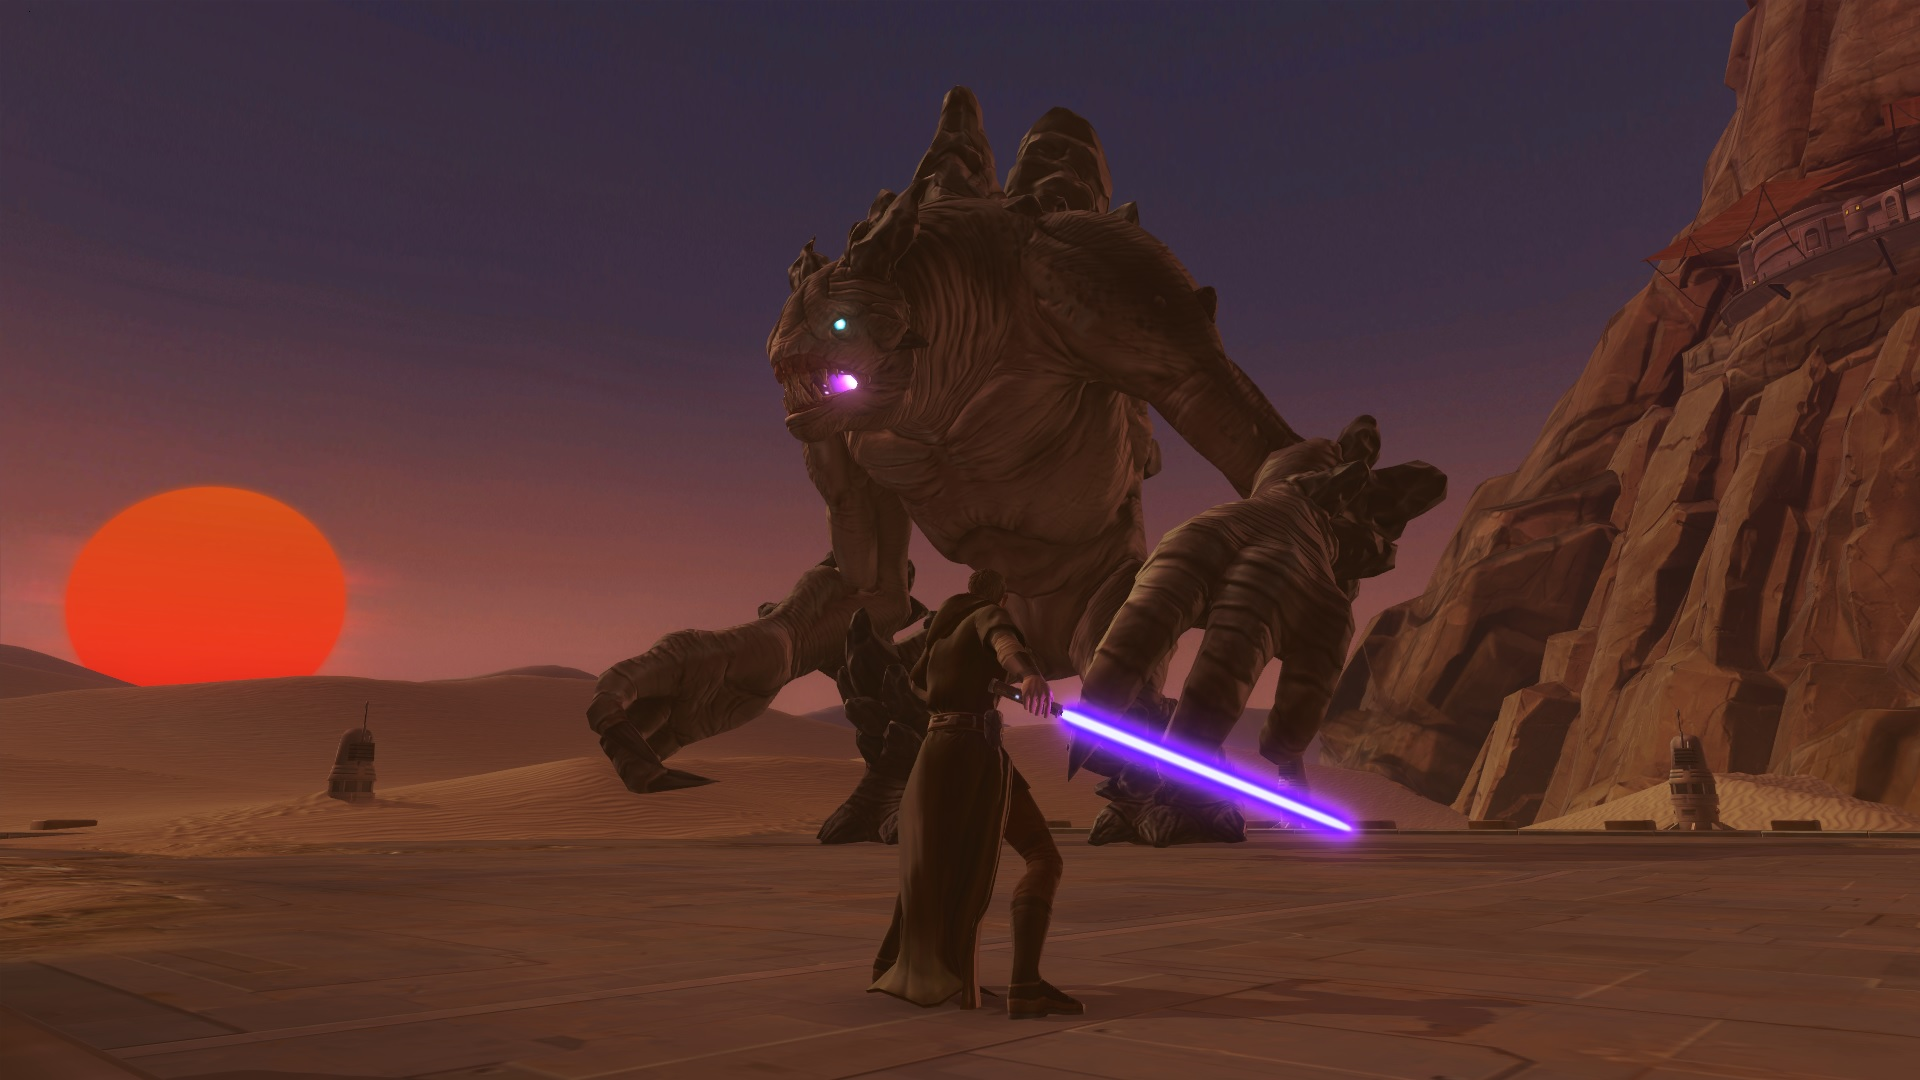 swtor big bad monster